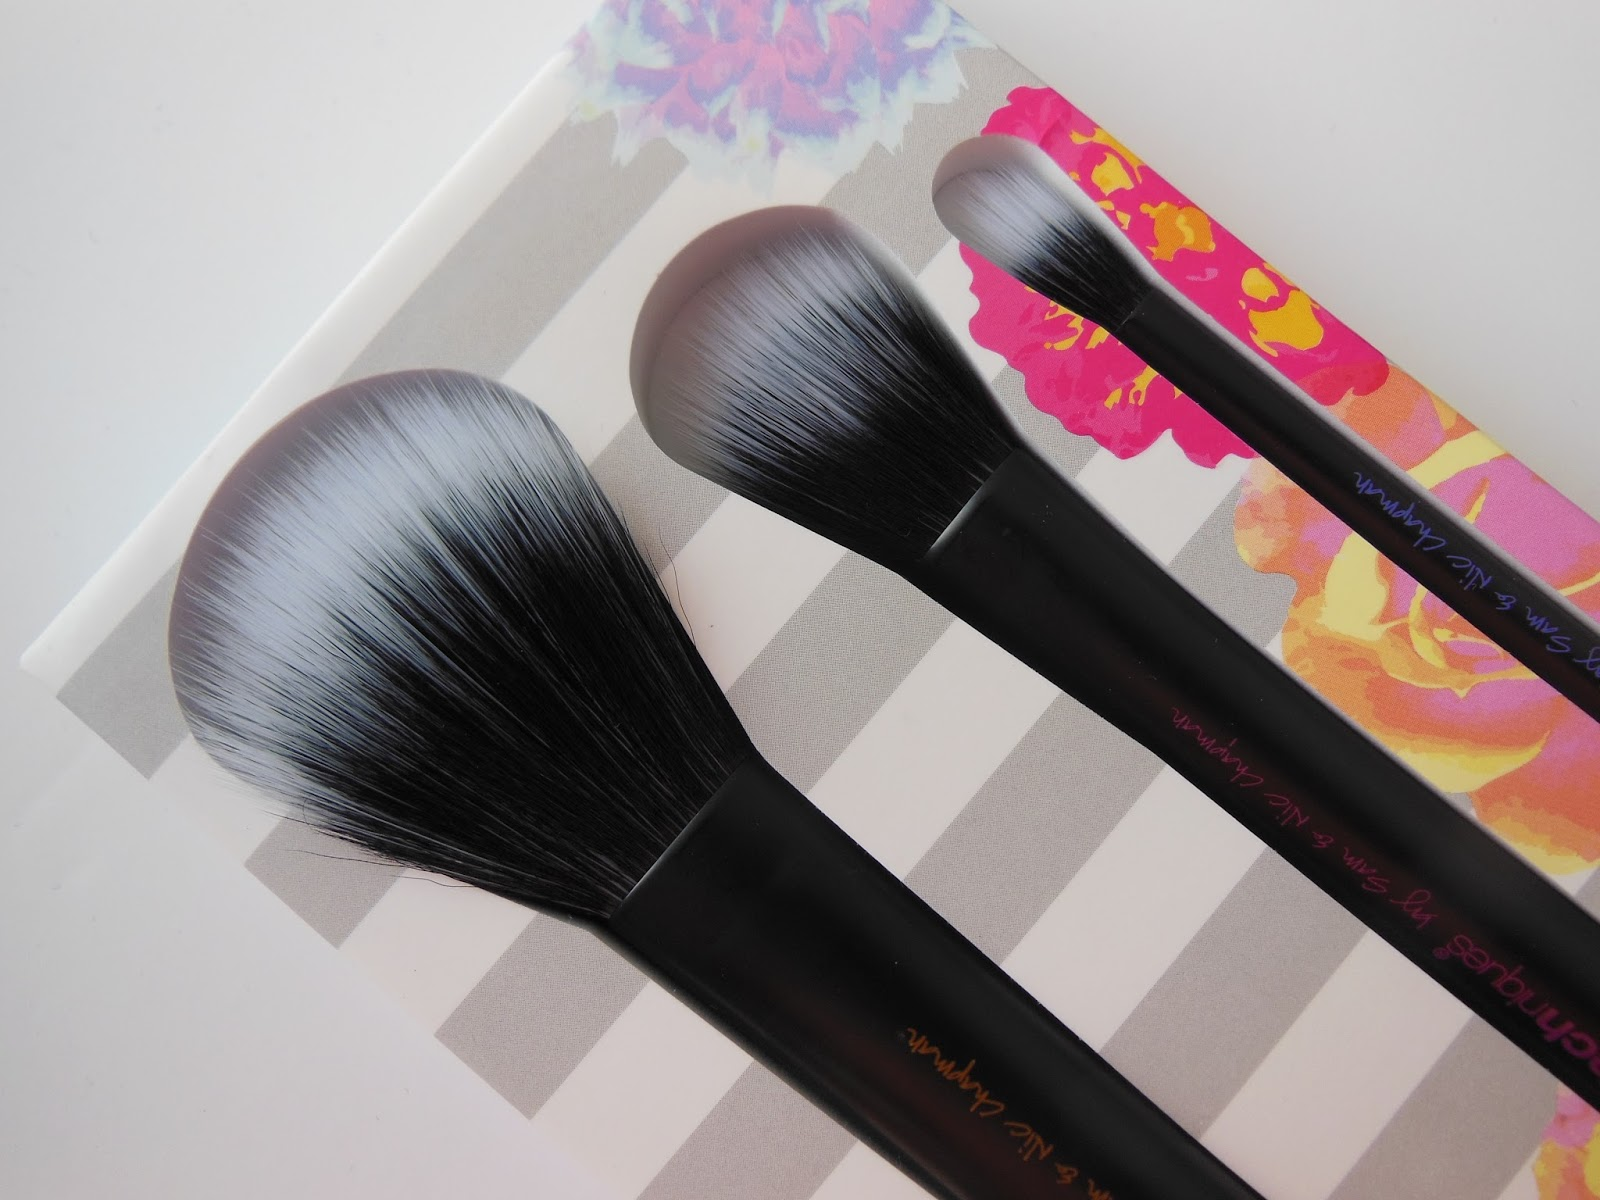 Real Techniques Limited Edition Duo Fibre Brush Collection ...